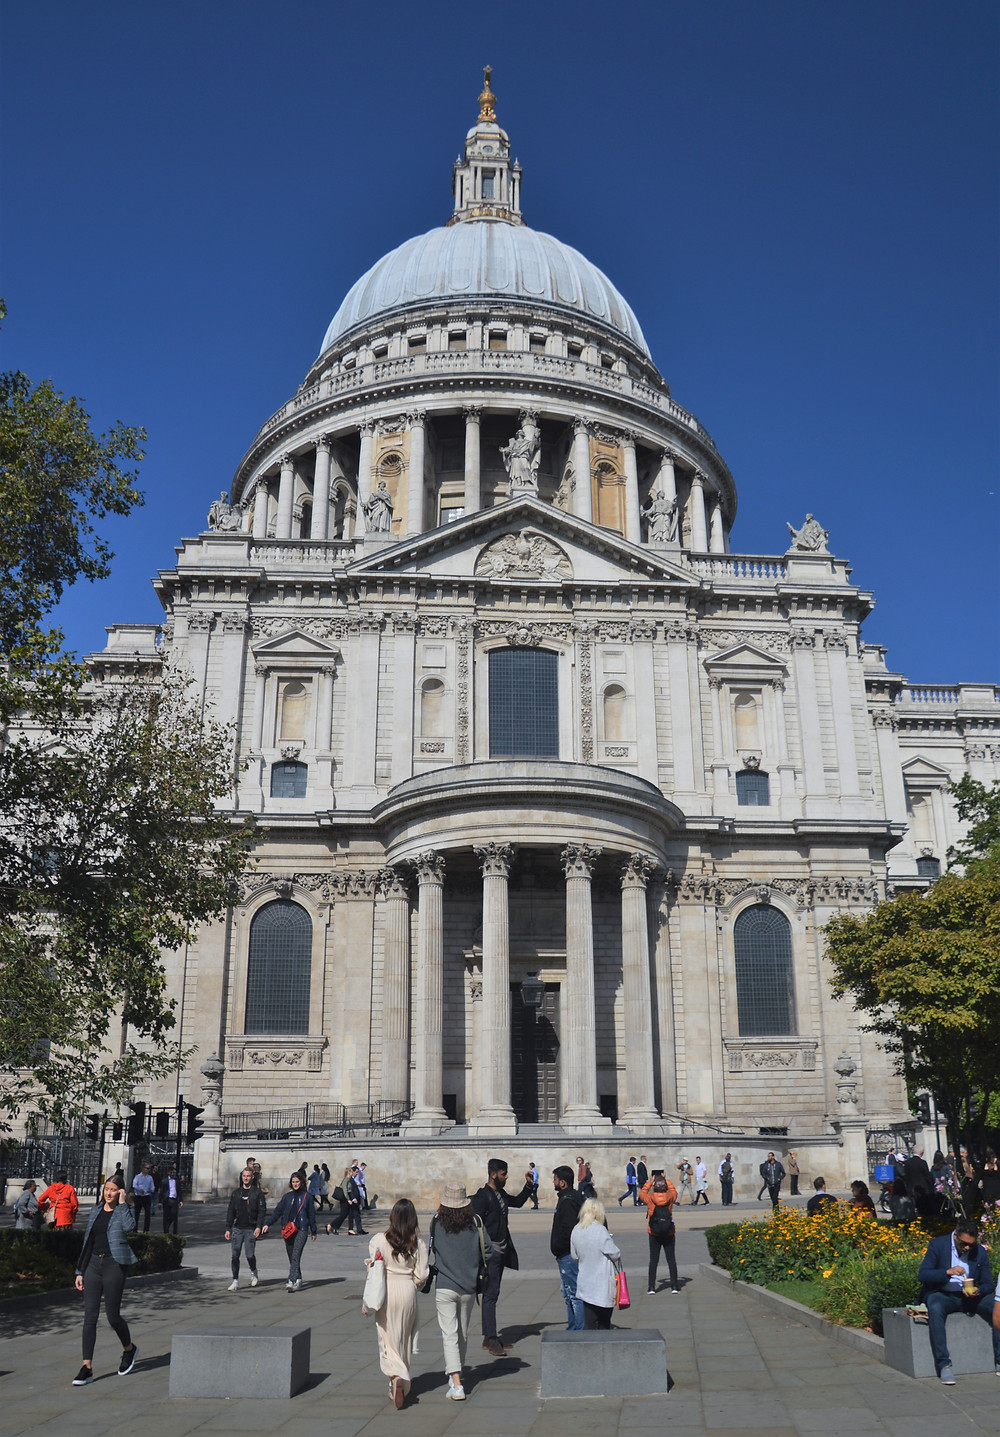 South side of the St Paul's Cathedral highlighting the dome designed by Wren. The dome, which rises 365 feet to the cross at its summit